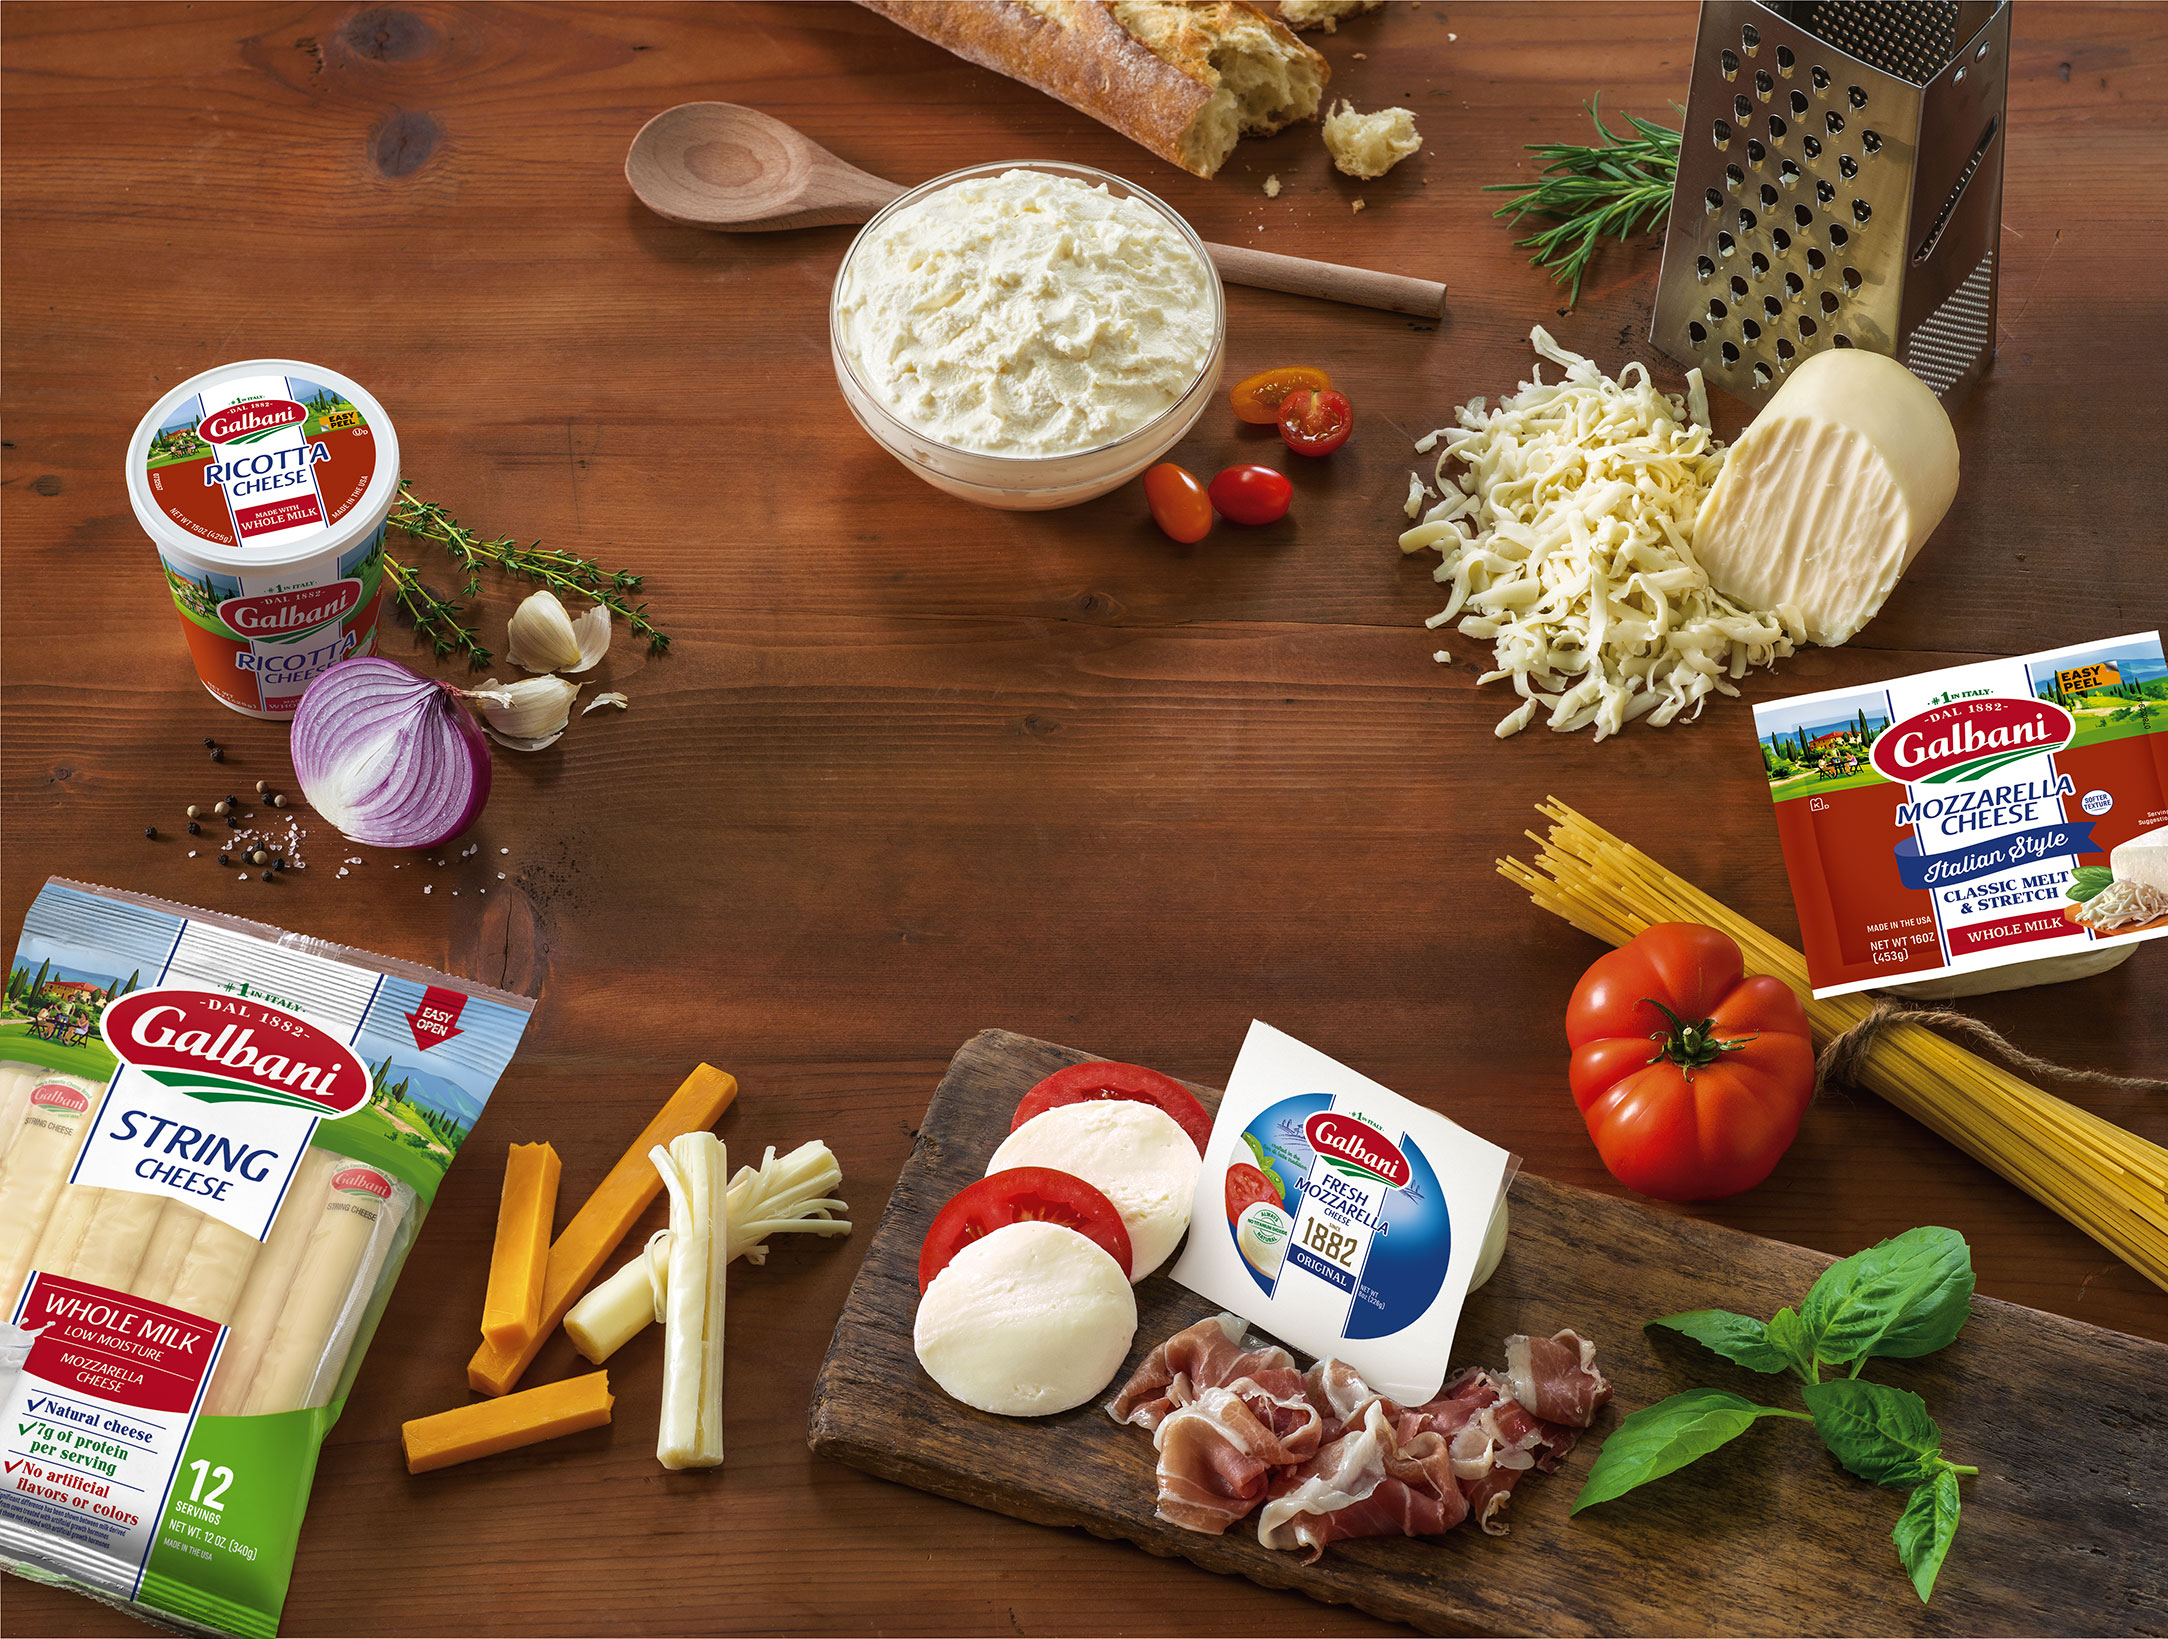 Our Authentic Cheeses - Galbani